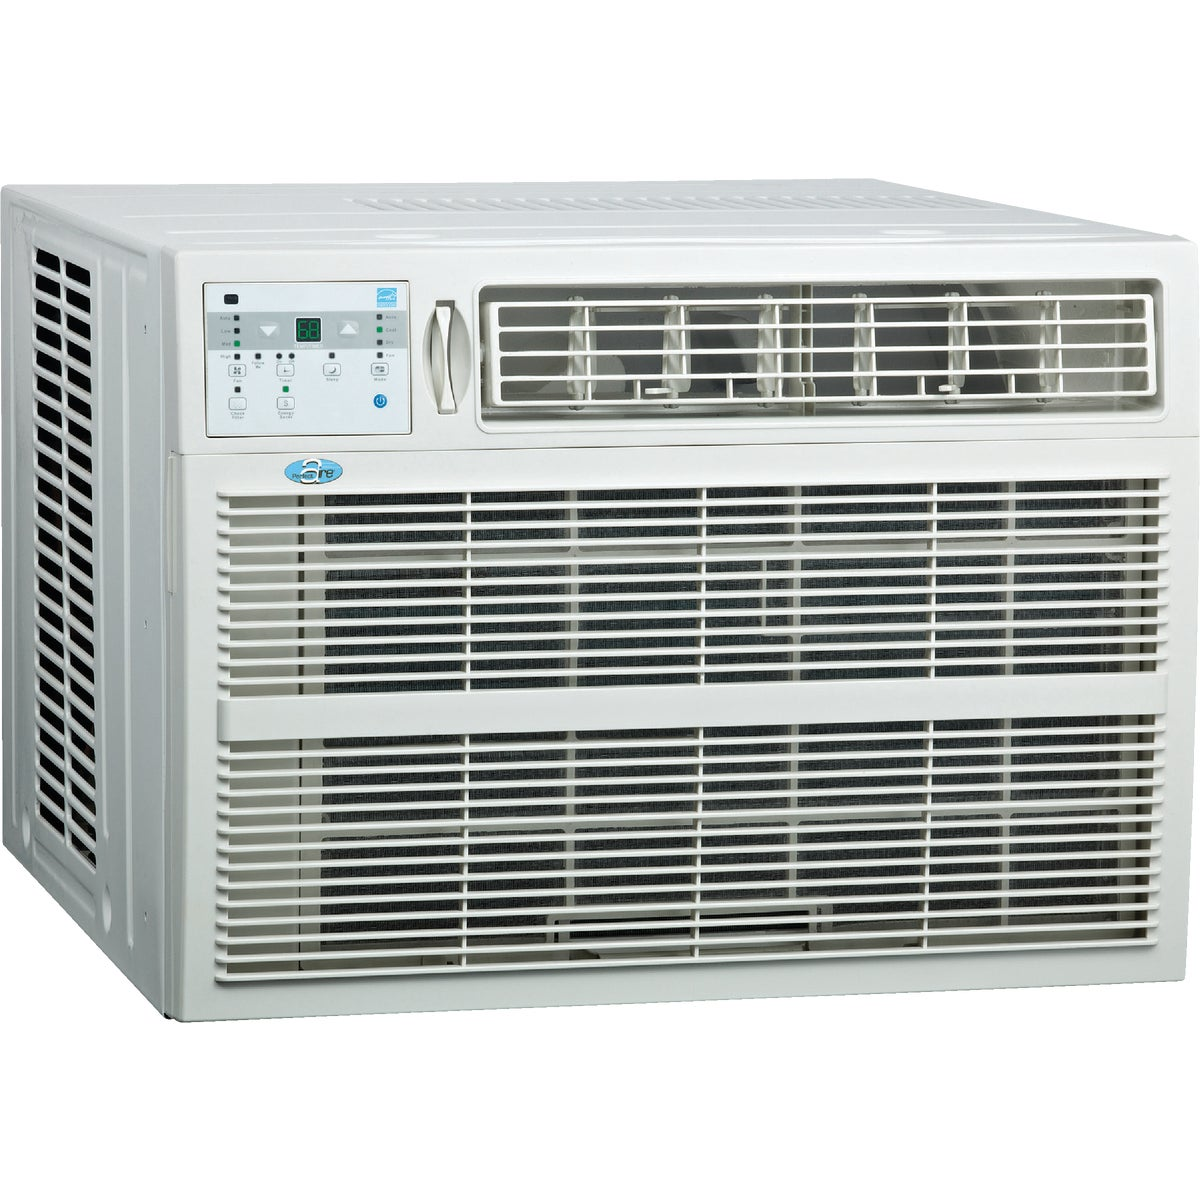 15000BTU AIR CONDITIONER - PAC15000 by Perfect Aire Import